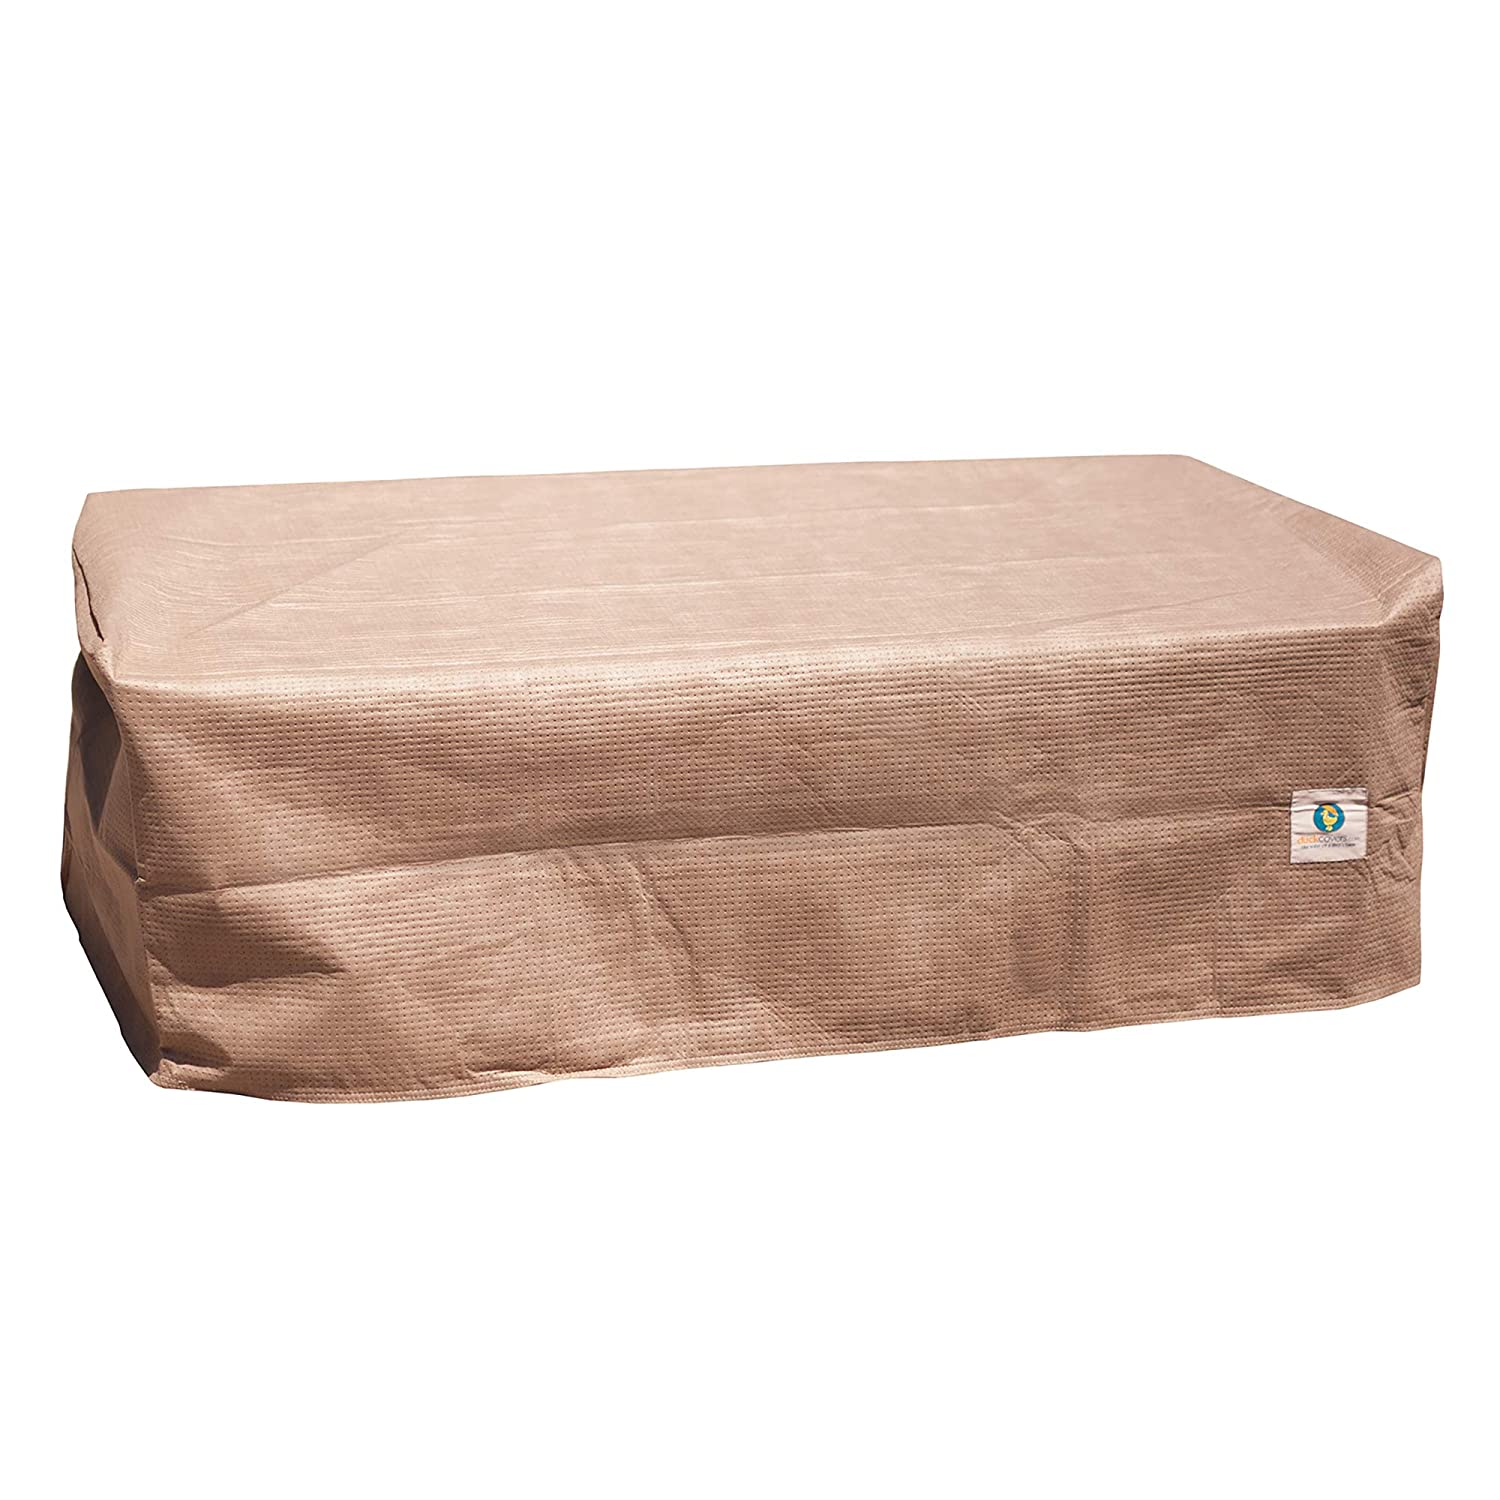 Amazon com duck covers elite rectangular patio ottoman side table cover fits outdoor rectangular patio ottoman side tables 52 in long patio chair